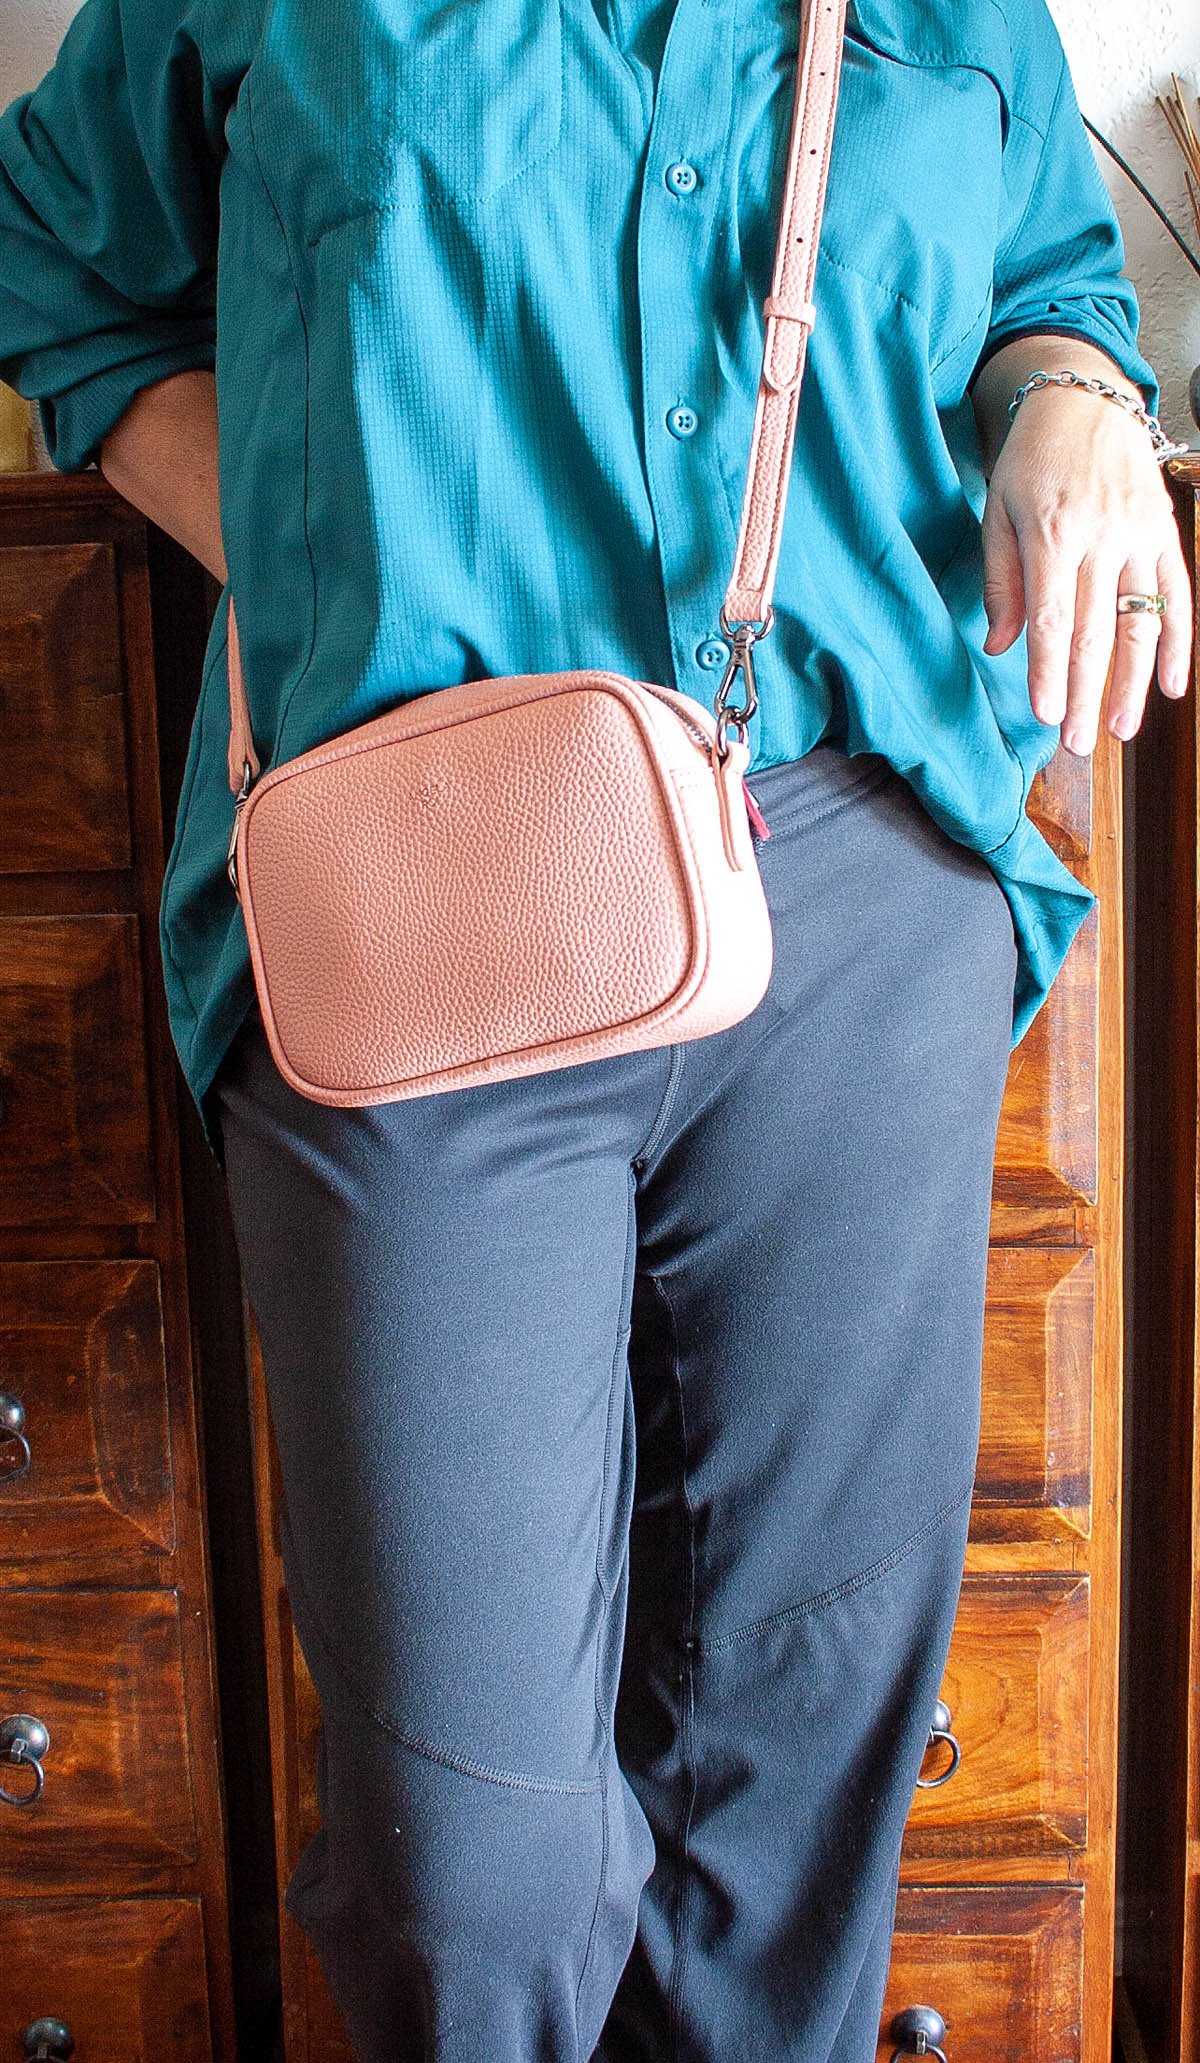 Grace Micro Crossbody in coral pink with vegan leather strap on me.